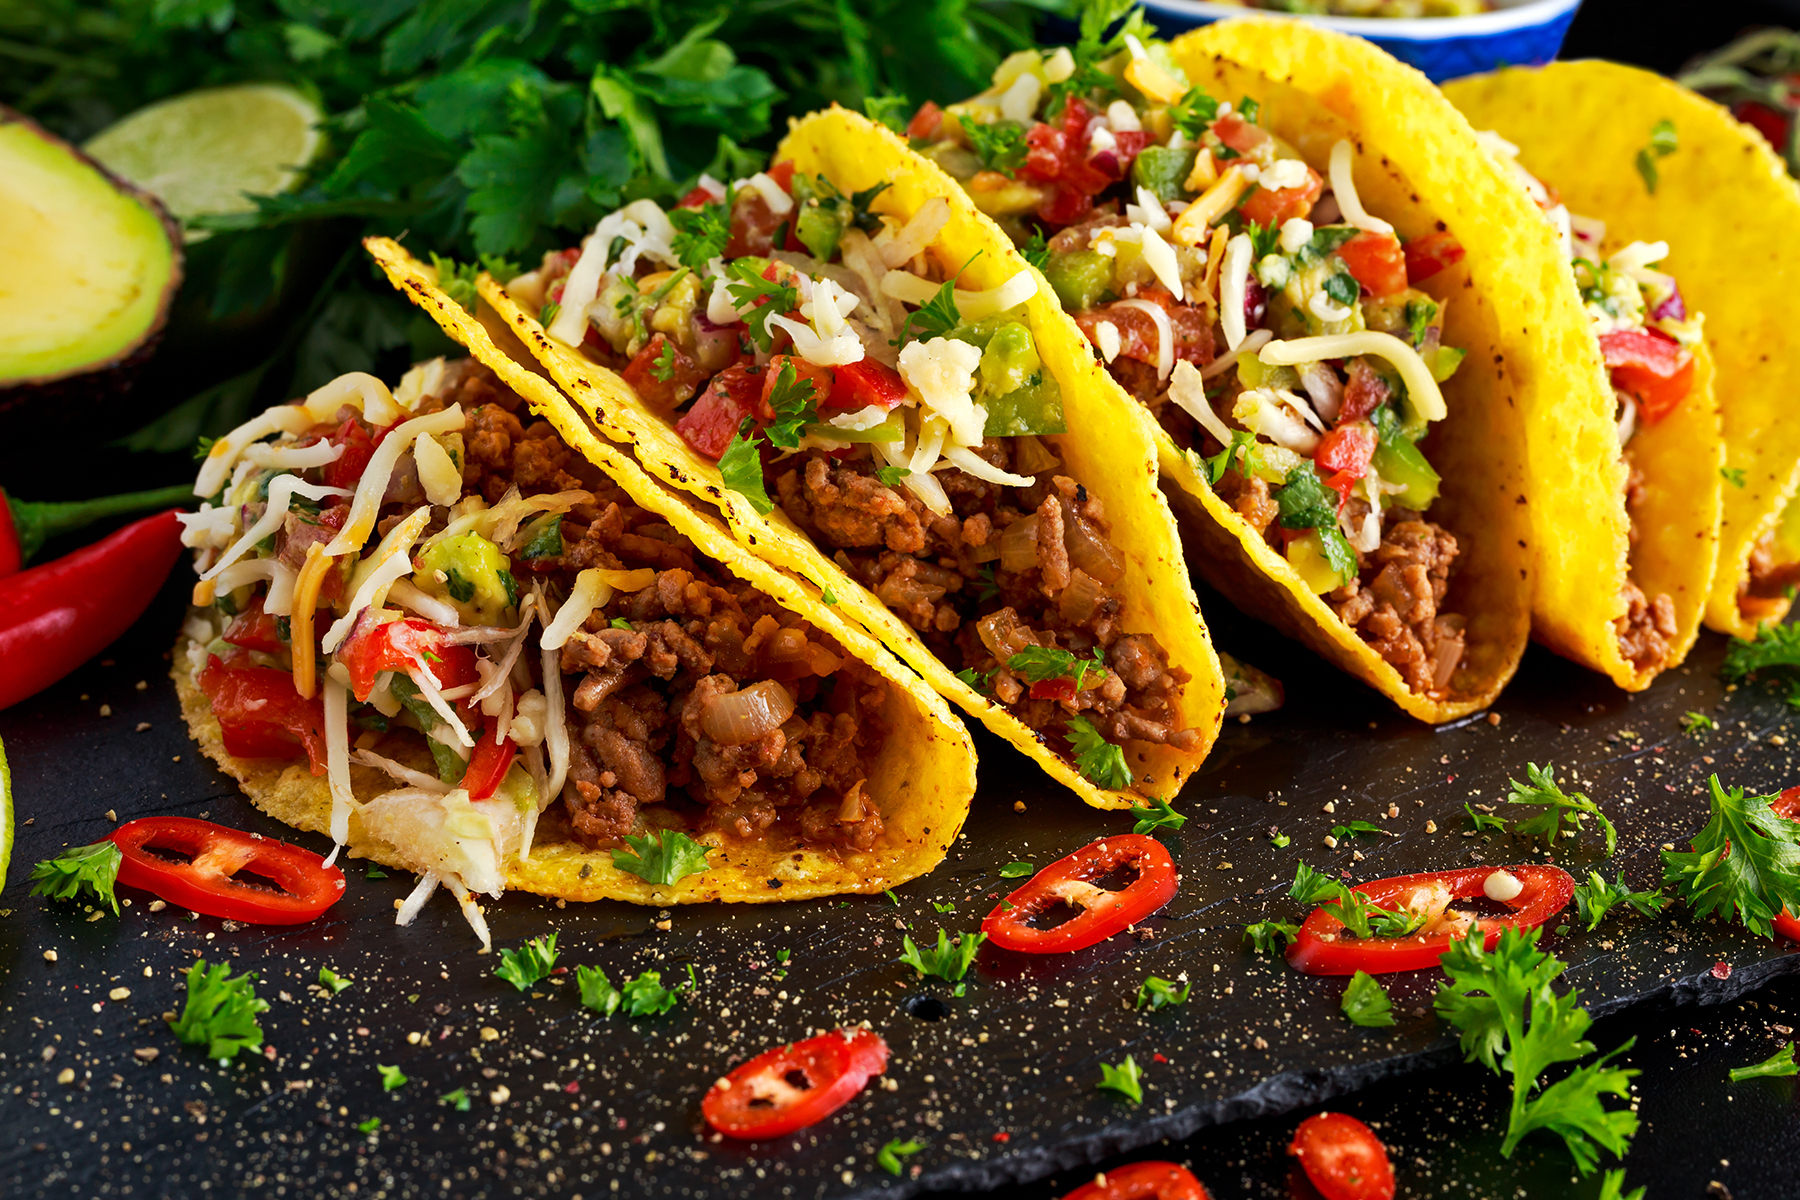 Four Scrumptous Tacos Lined up with ingredients around them